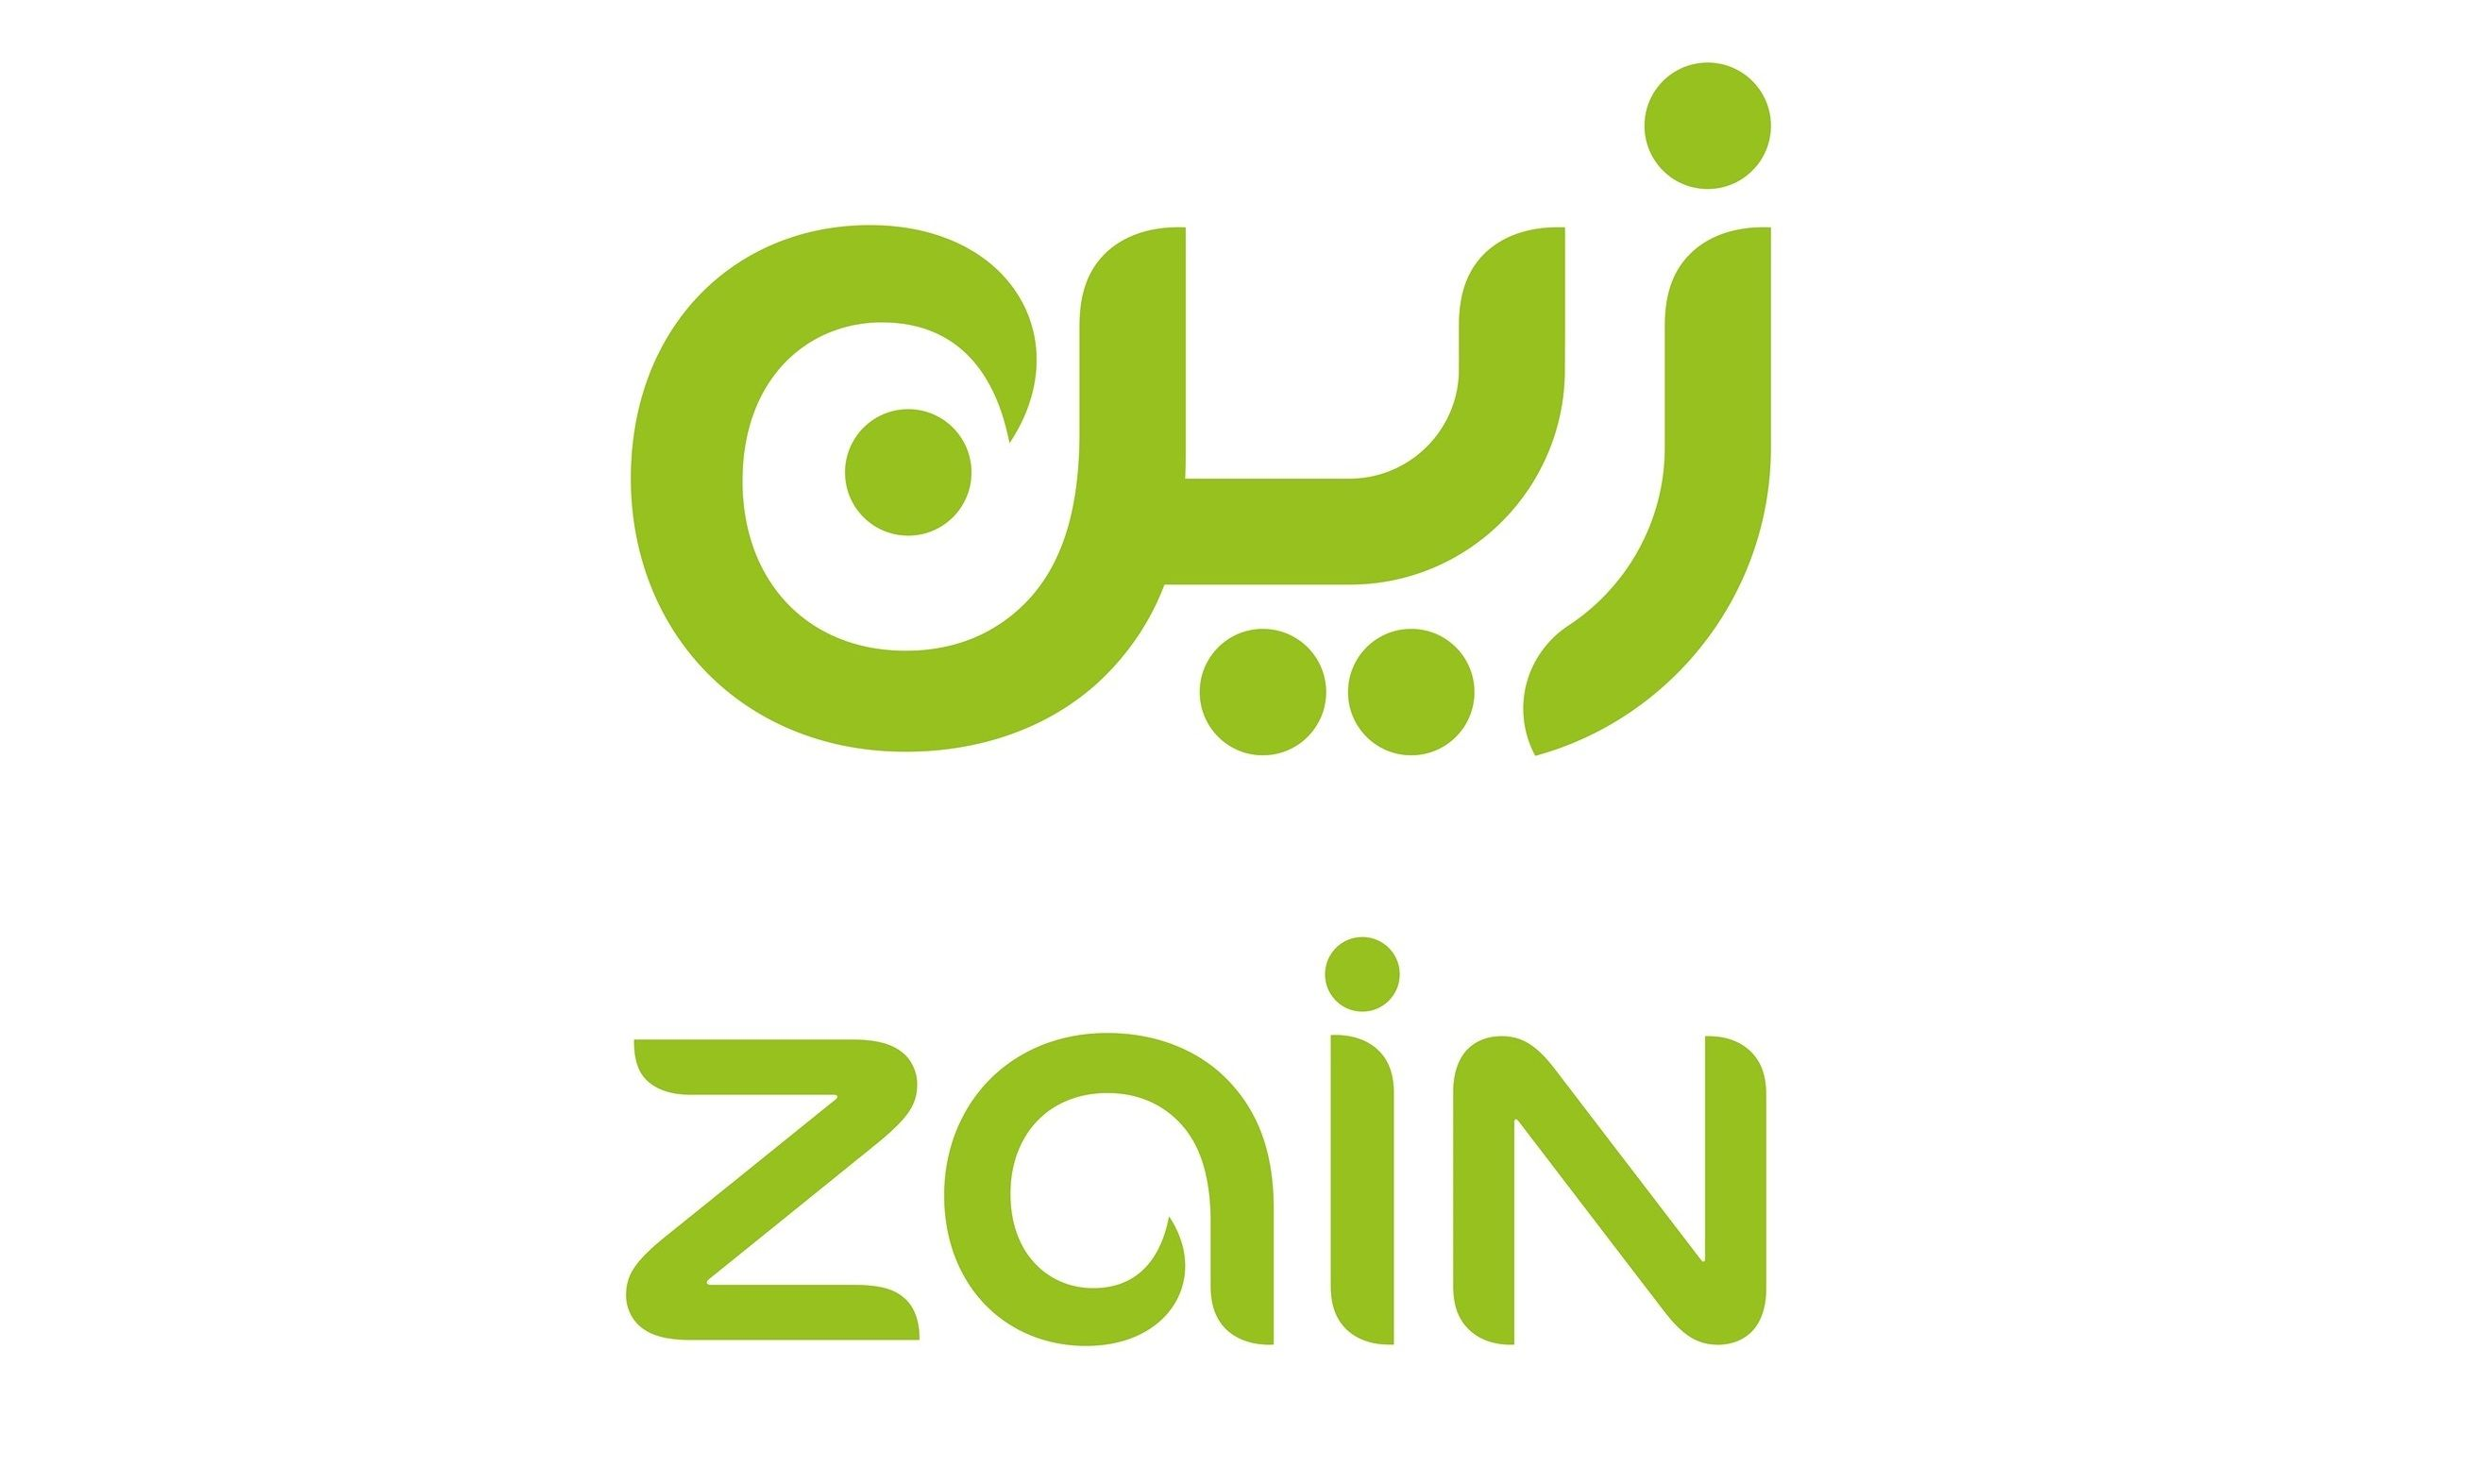 Zain Ksa Continues To Offer Unlimited On Net Calls Vimeo Logo Tech Company Logos Logos